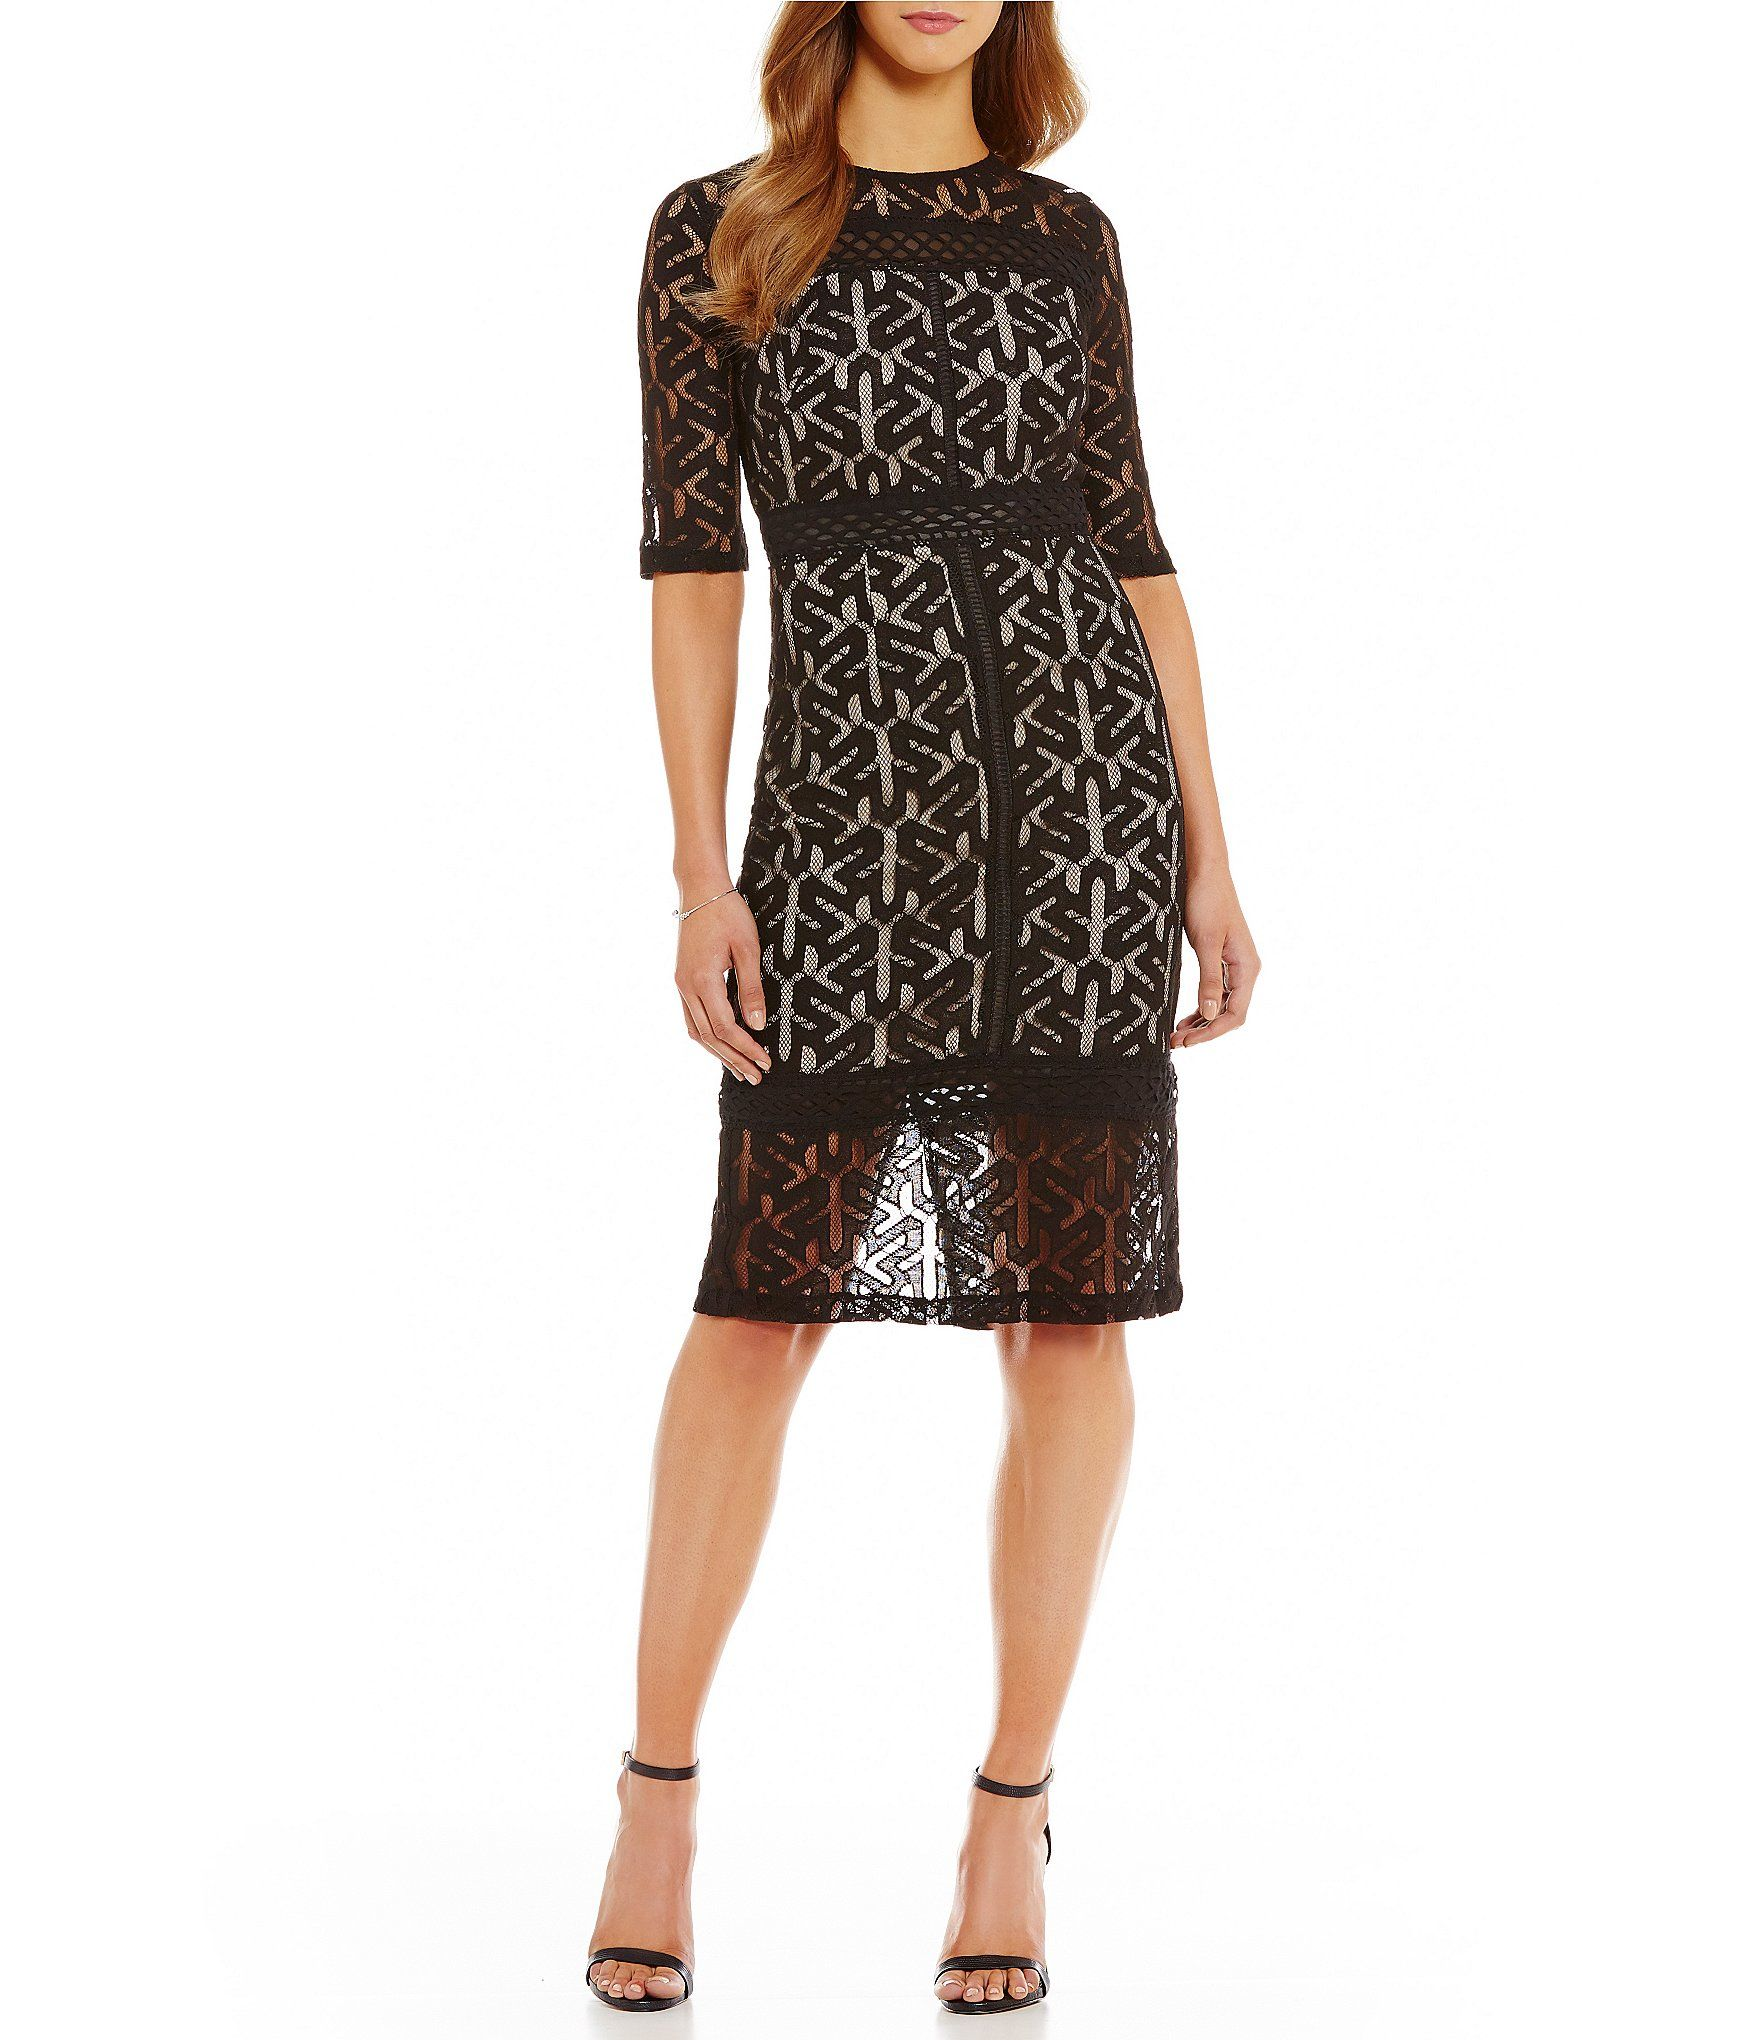 Jax illusion midi sheath dress dillards babybabybaby jax illusion midi sheath dress dillards ombrellifo Gallery